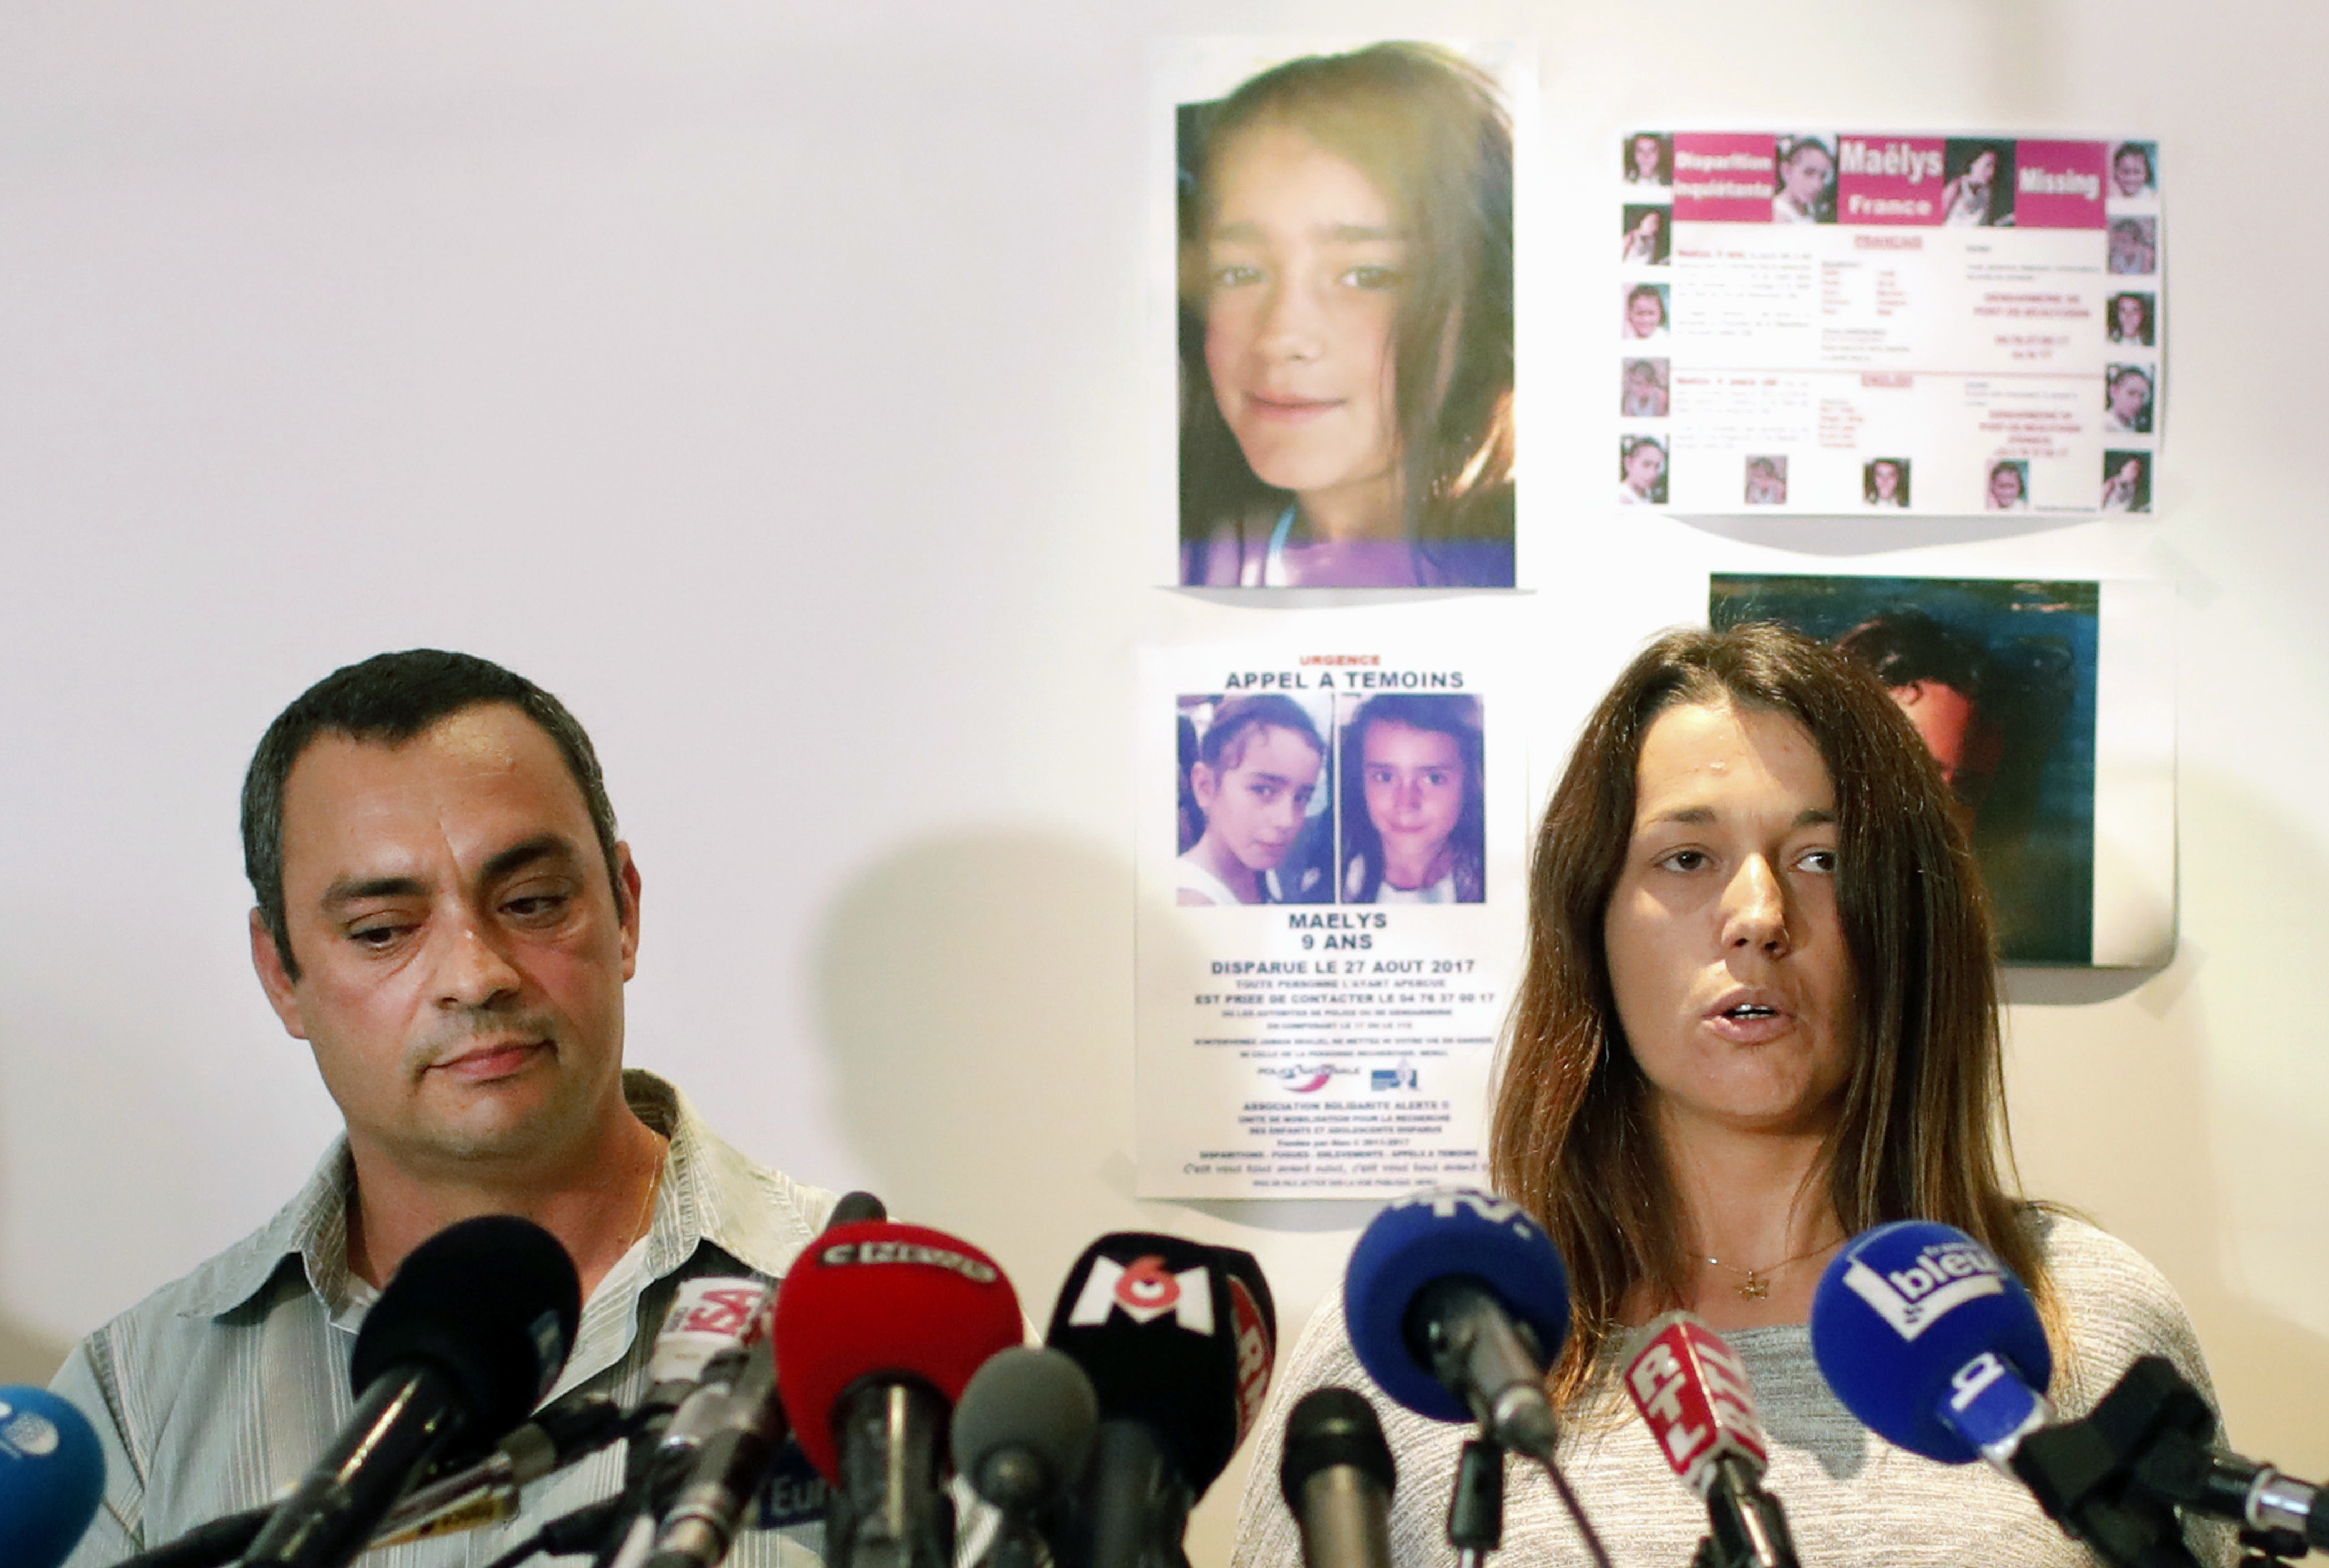 The father of Maelys, Joachim de Araujo, left, and his wife Jennifer at a press conference in Lyon after her disappearance (Laurent Cipriani/AP)